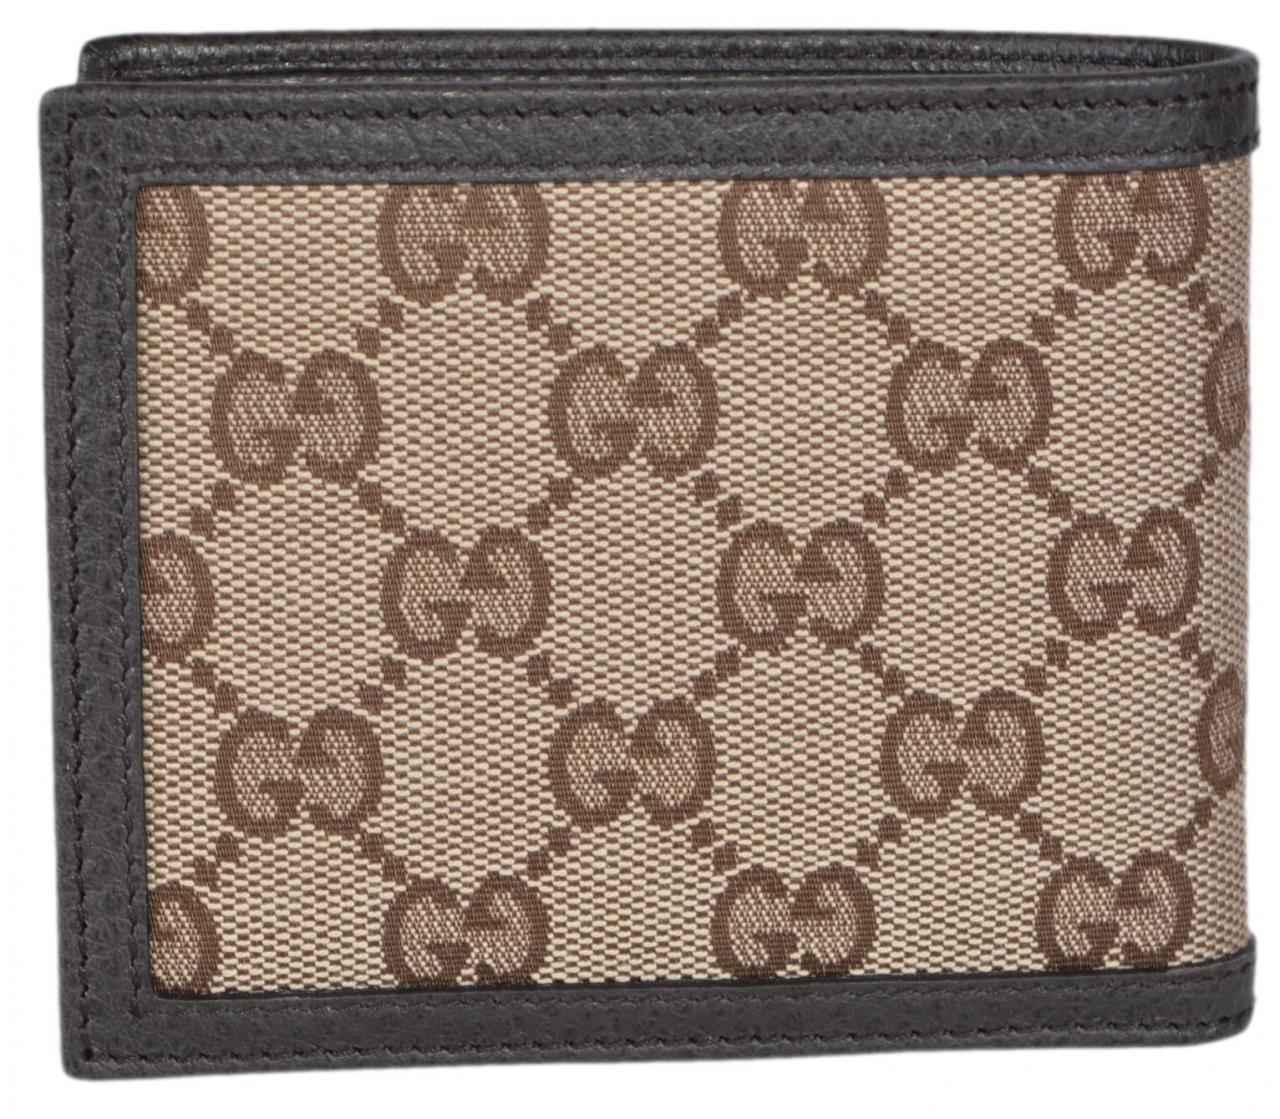 Free Shipping Replica Bags Gucci                        Brown New Men's 260987 Beige Canvas Gg Guccissima Bifold Wallet